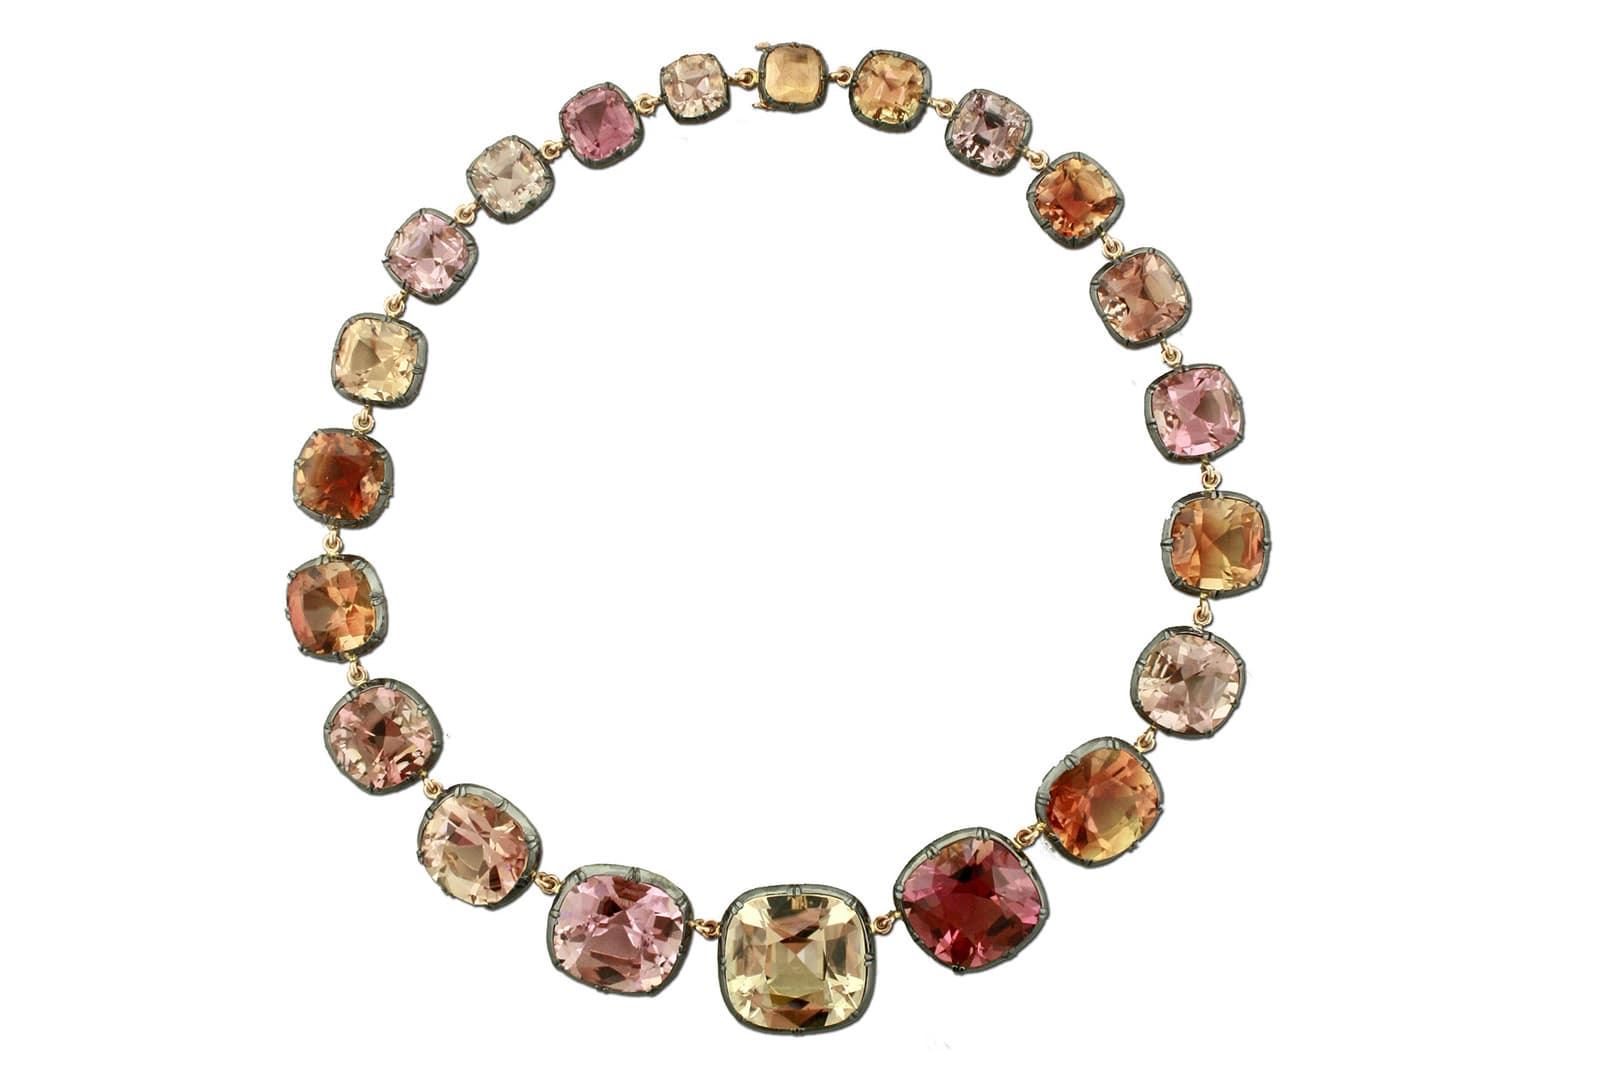 Taffin riviere necklace with tourmaline in silver and rose gold